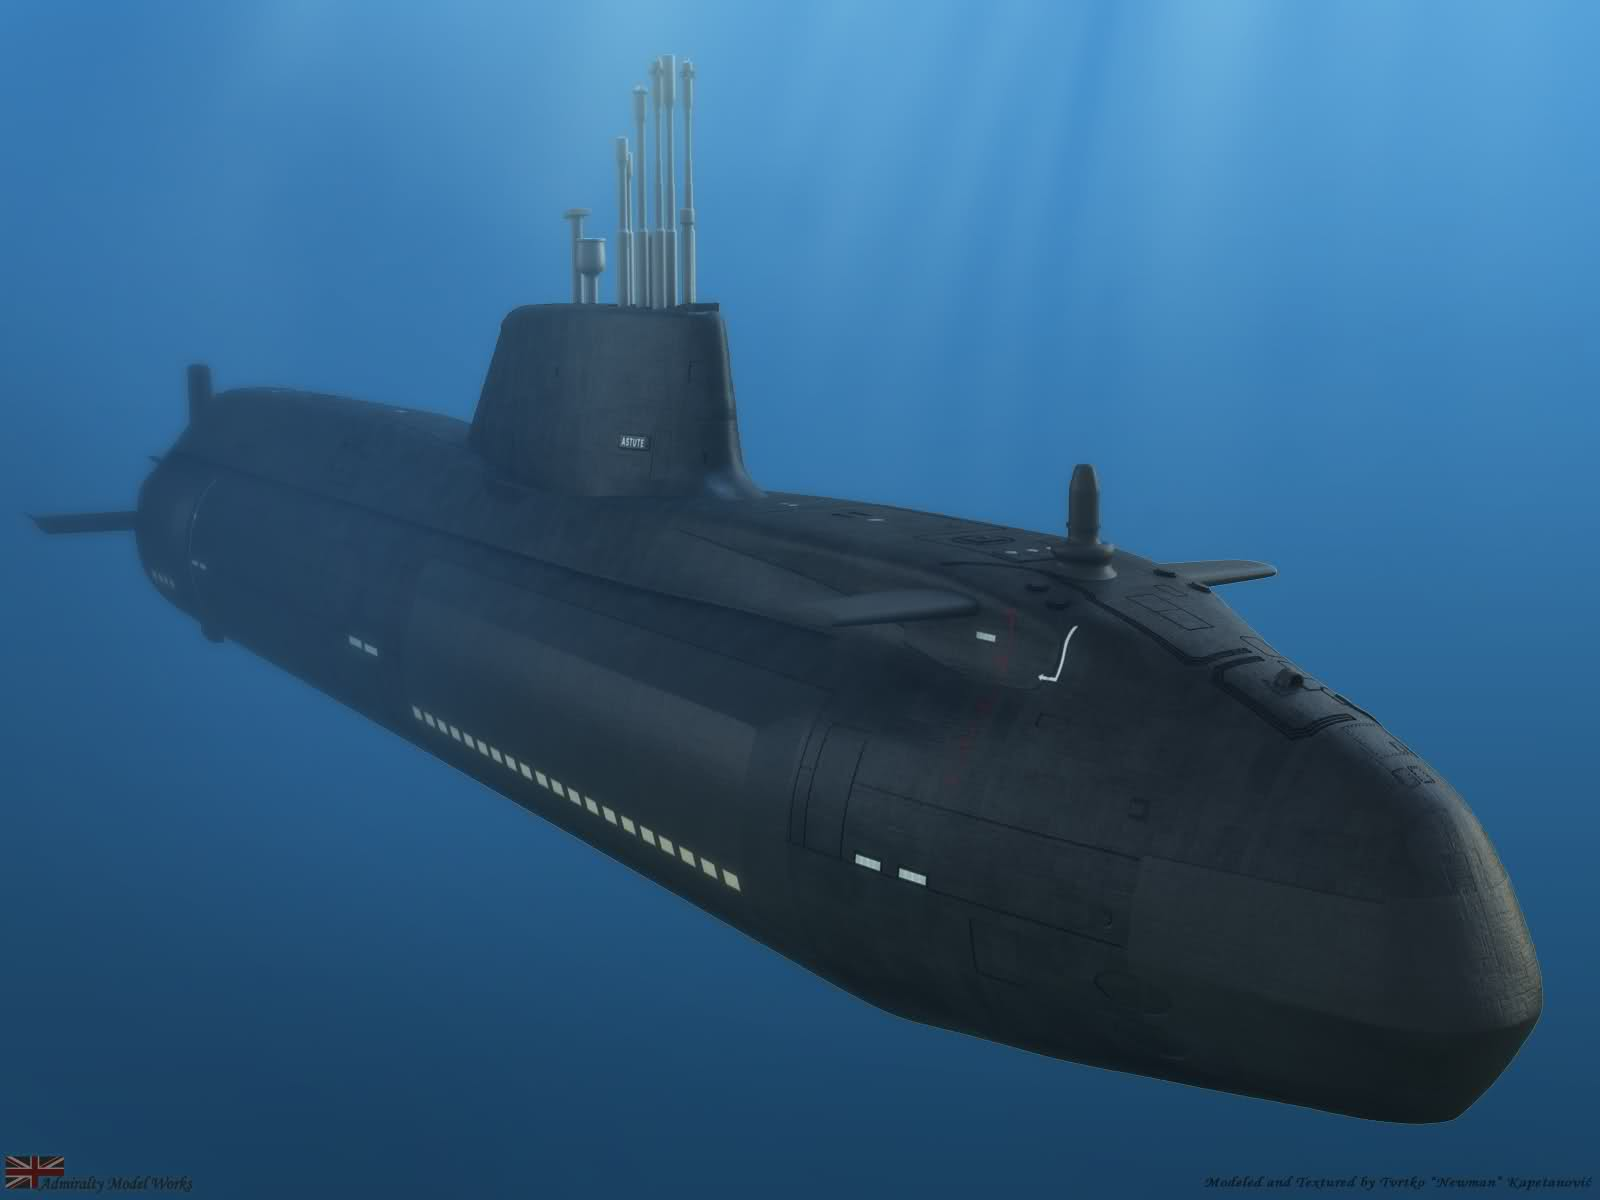 the innovation of nuclear missile and submarine designs Polaris was a turning point in nuclear weapon design  small, efficient  thermonuclear weapons that could be carried by submarine  the significance  of the innovations was confirmed during tests in the pacific only a few.